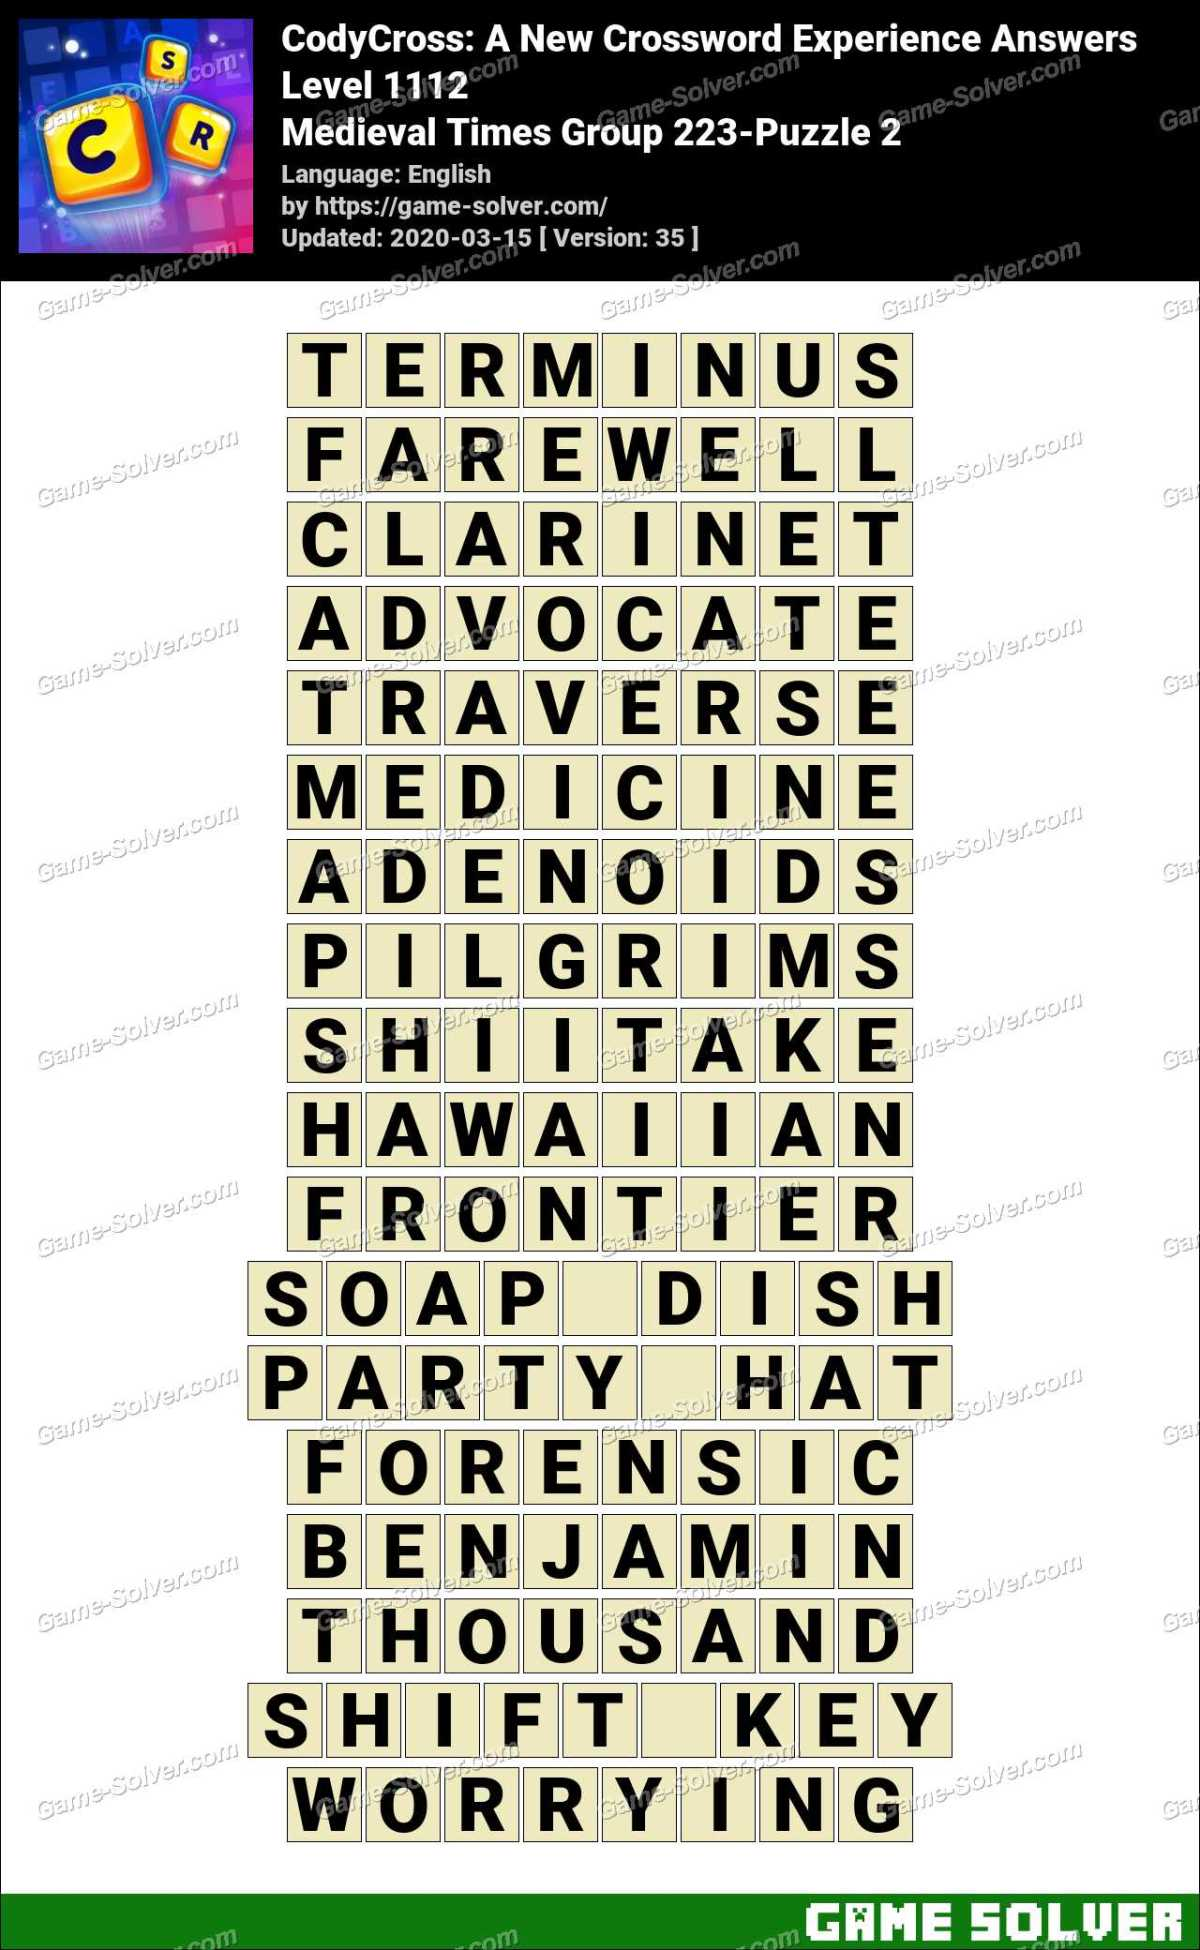 CodyCross Medieval Times Group 223-Puzzle 2 Answers